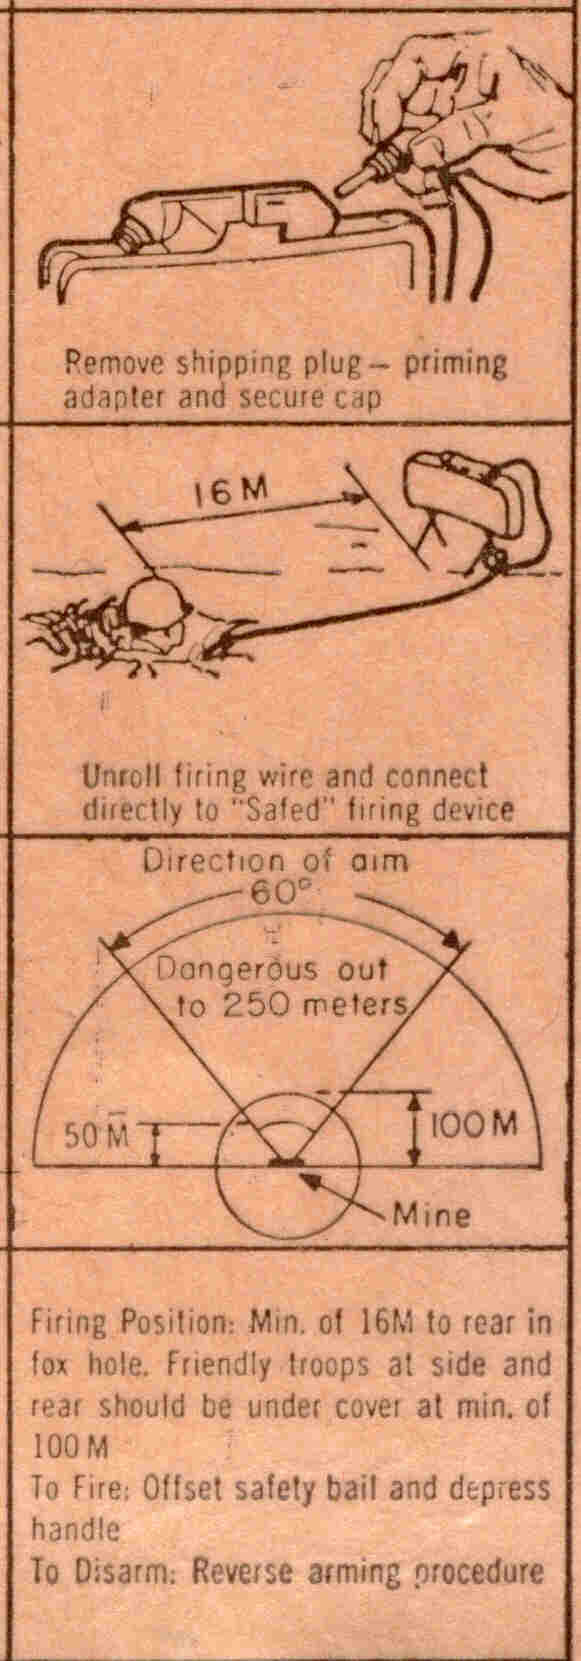 Claymore Mine Daisy Chain Wiring Diagram